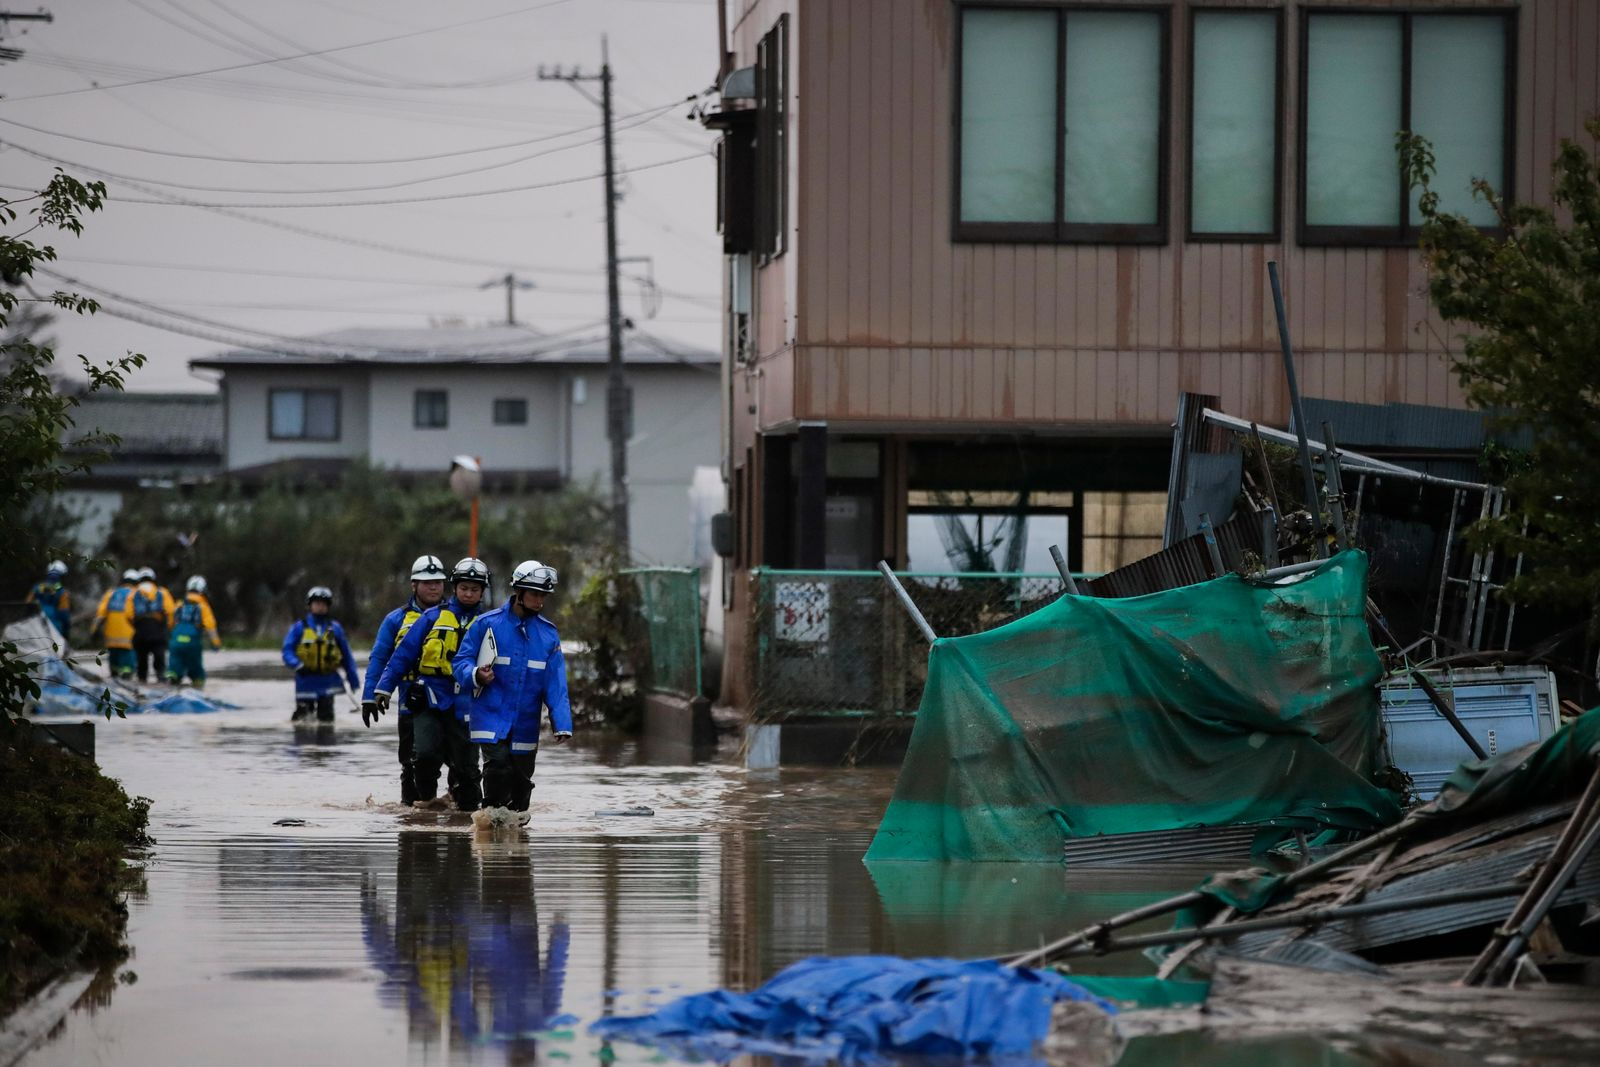 Search and rescue team members wade through floodwaters Monday, Oct. 14, 2019, in Hoyasu, Japan.{ } (AP Photo/Jae C. Hong)